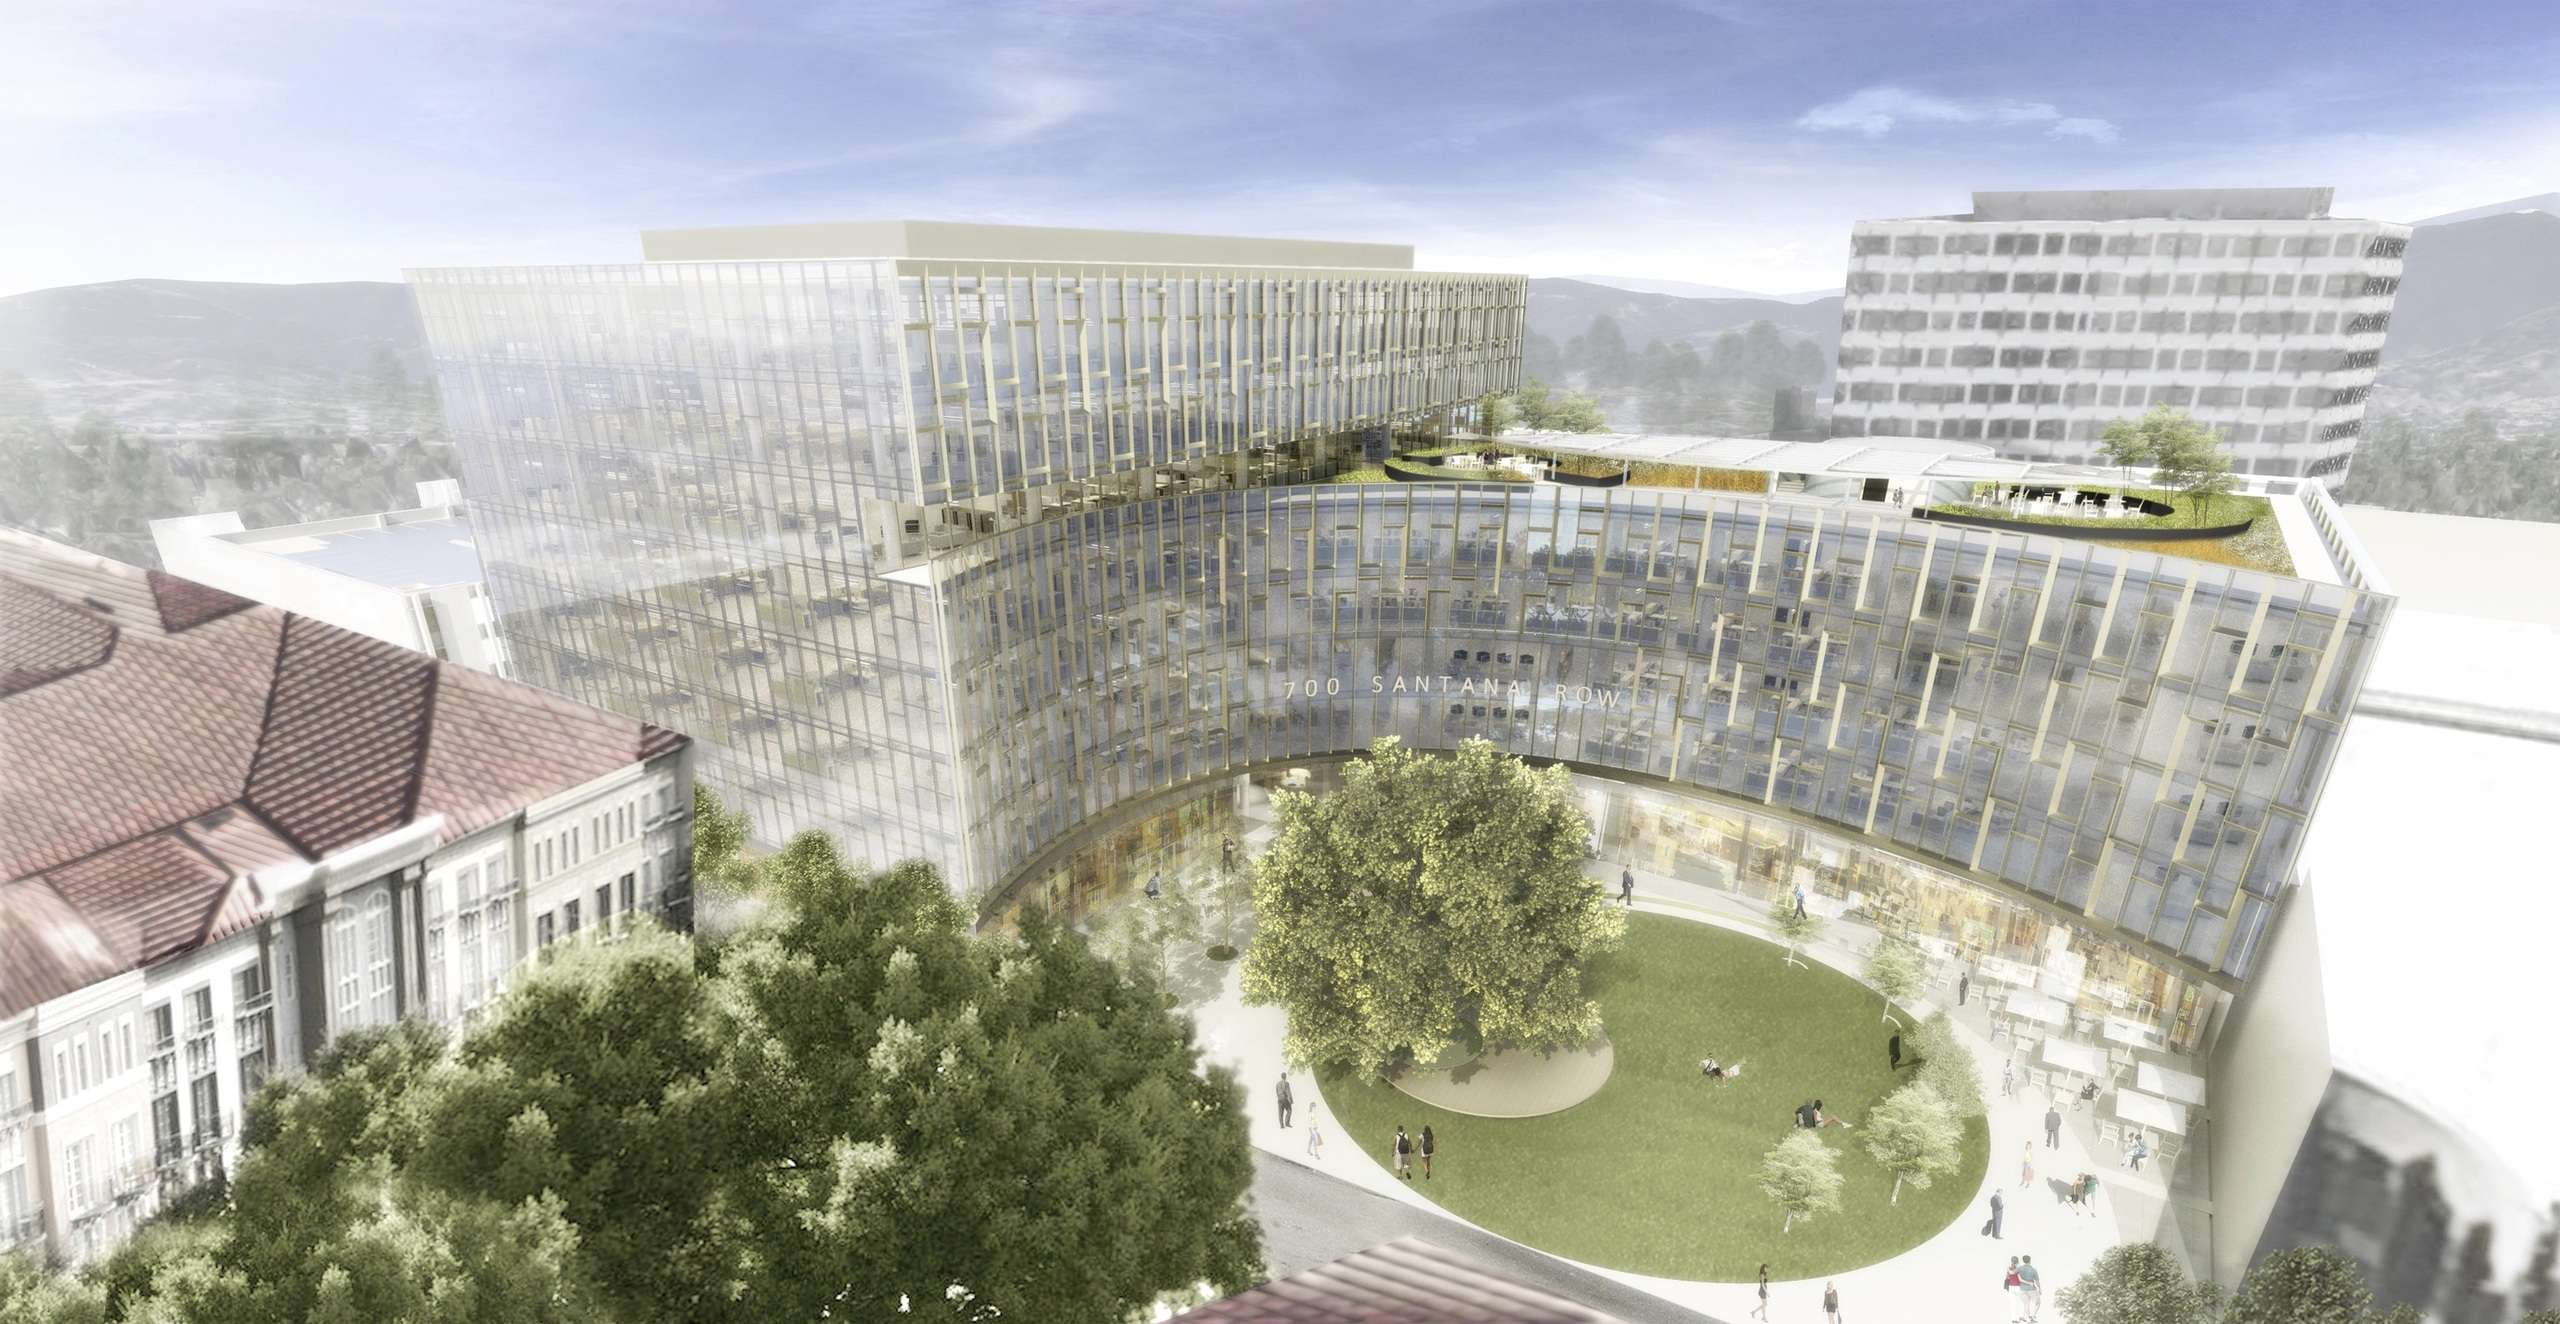 Artist's impression of Federal Realty Investment Trust's 700 Santana Row. (Image: WRNS Studio)